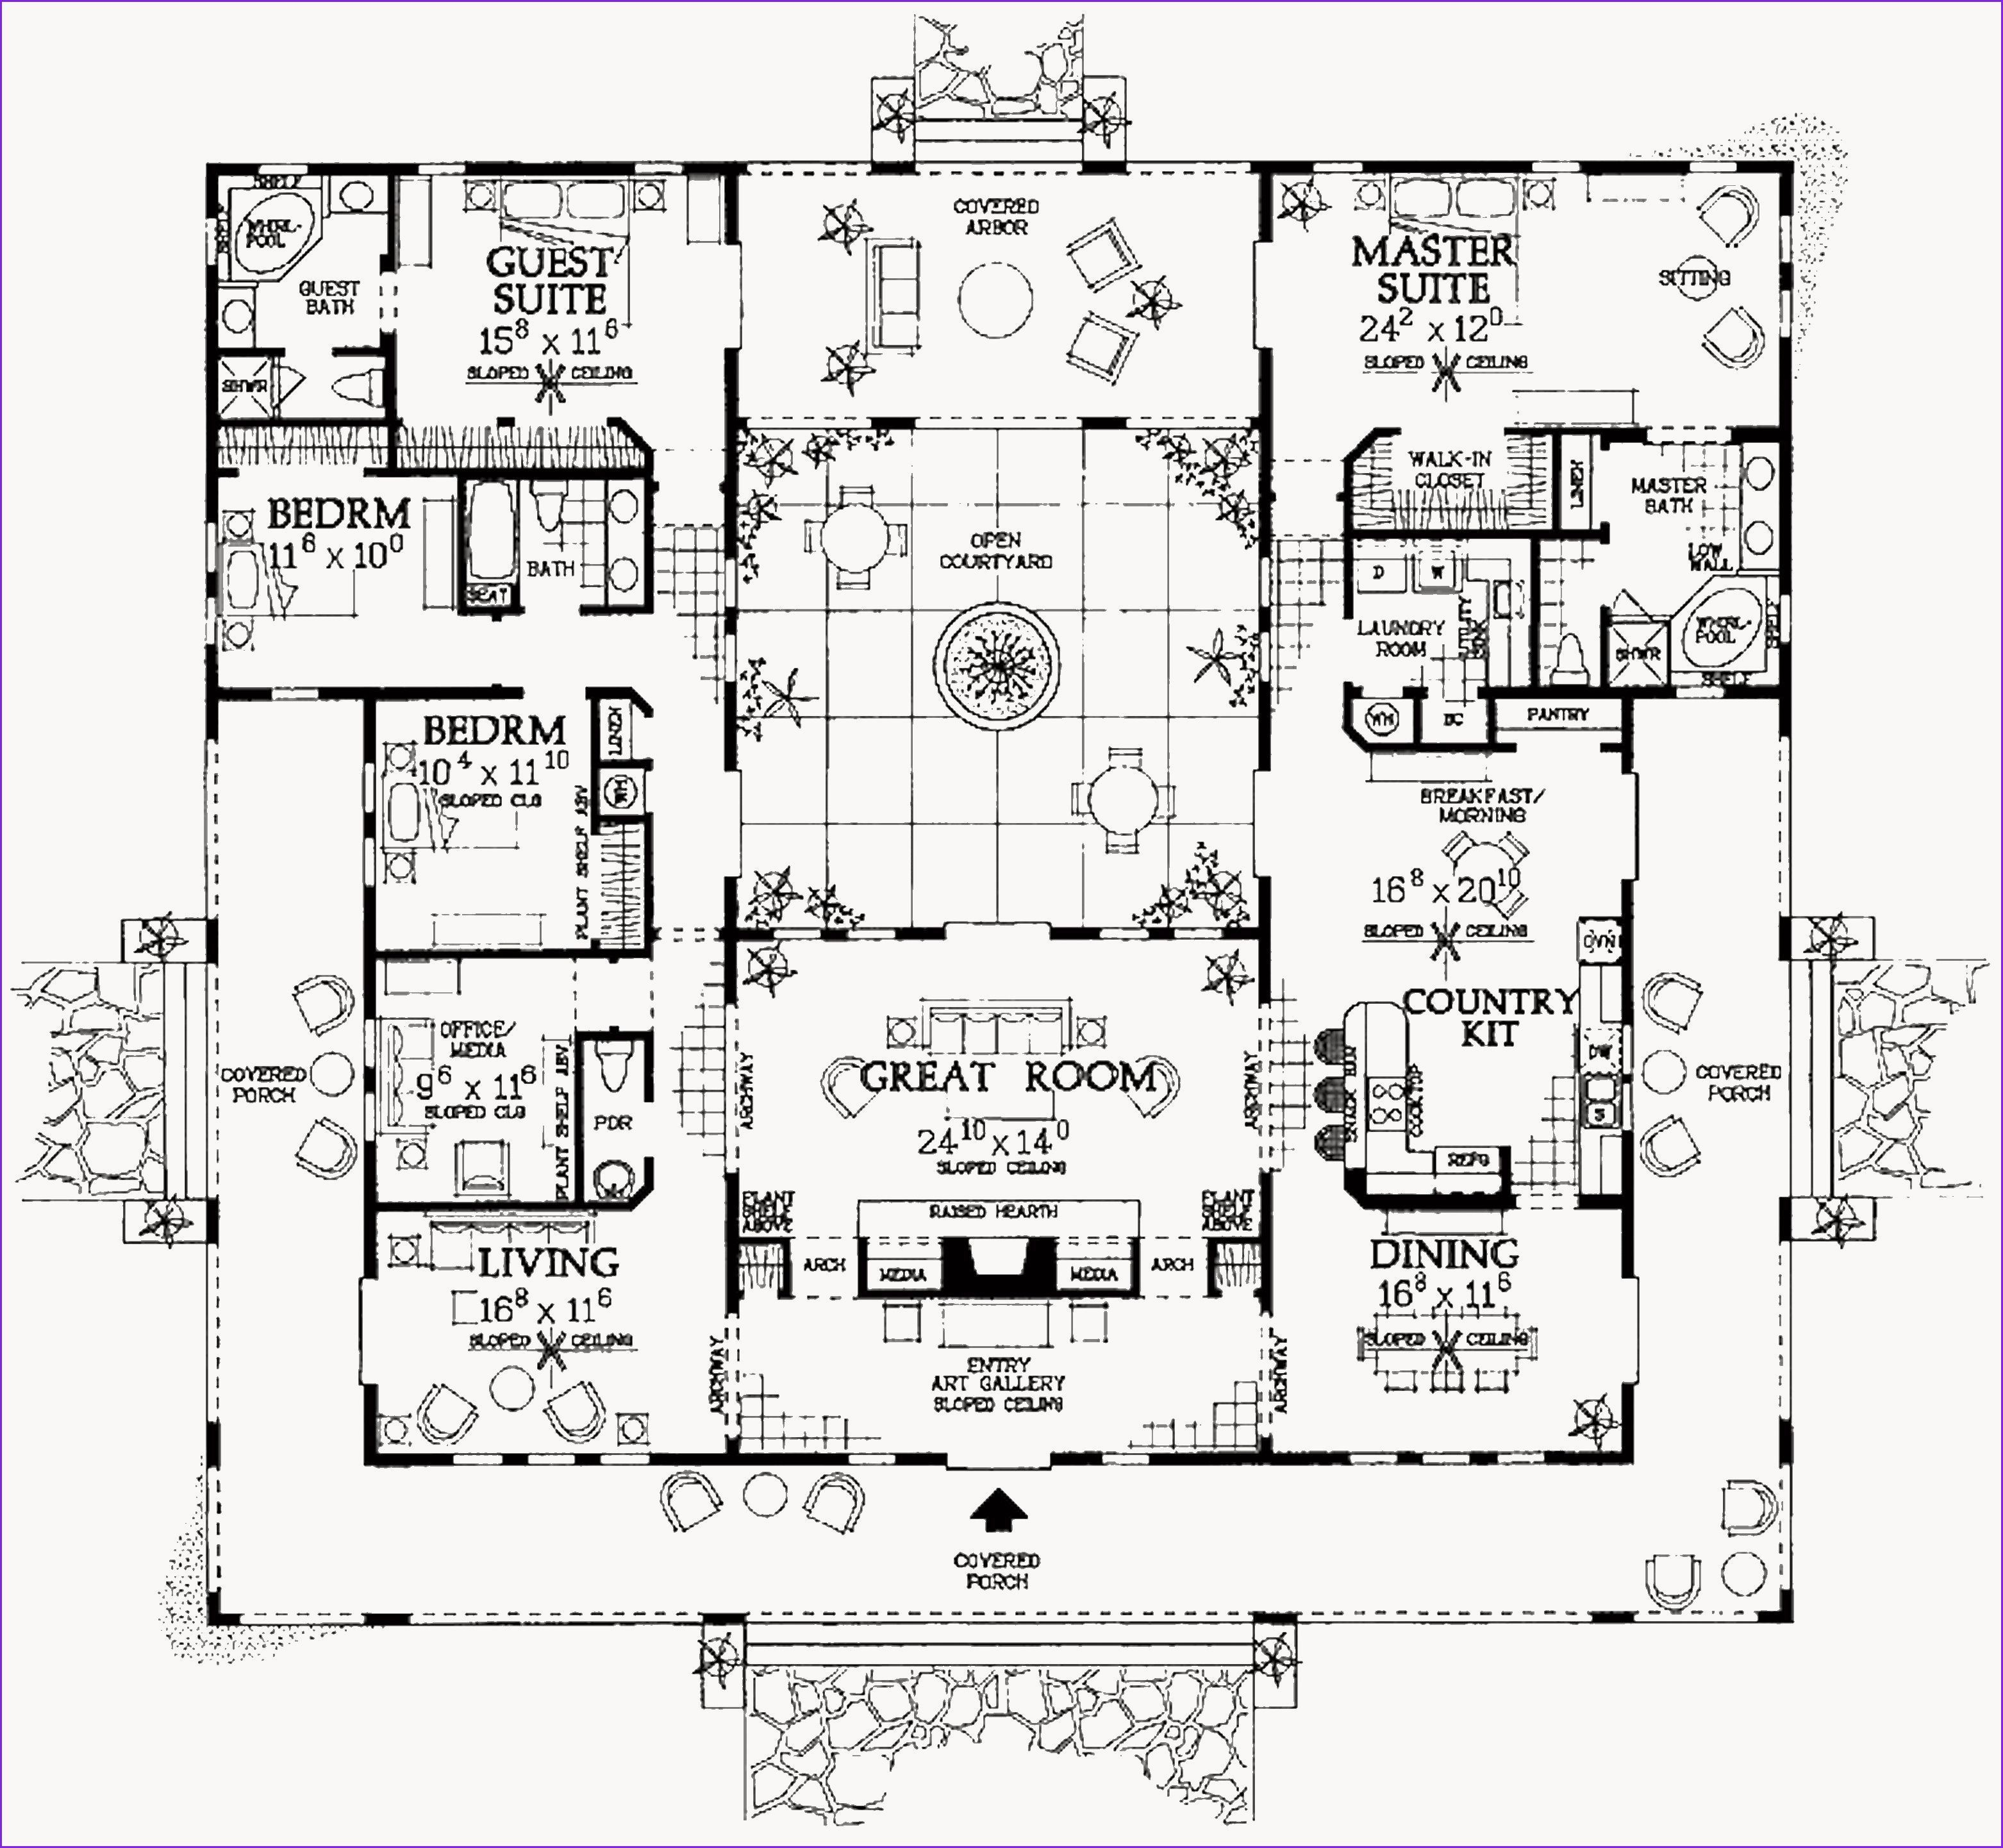 Awesome Spanish Courtyard House Plans Mediterranean Style House Plans Courtyard House Plans Courtyard House